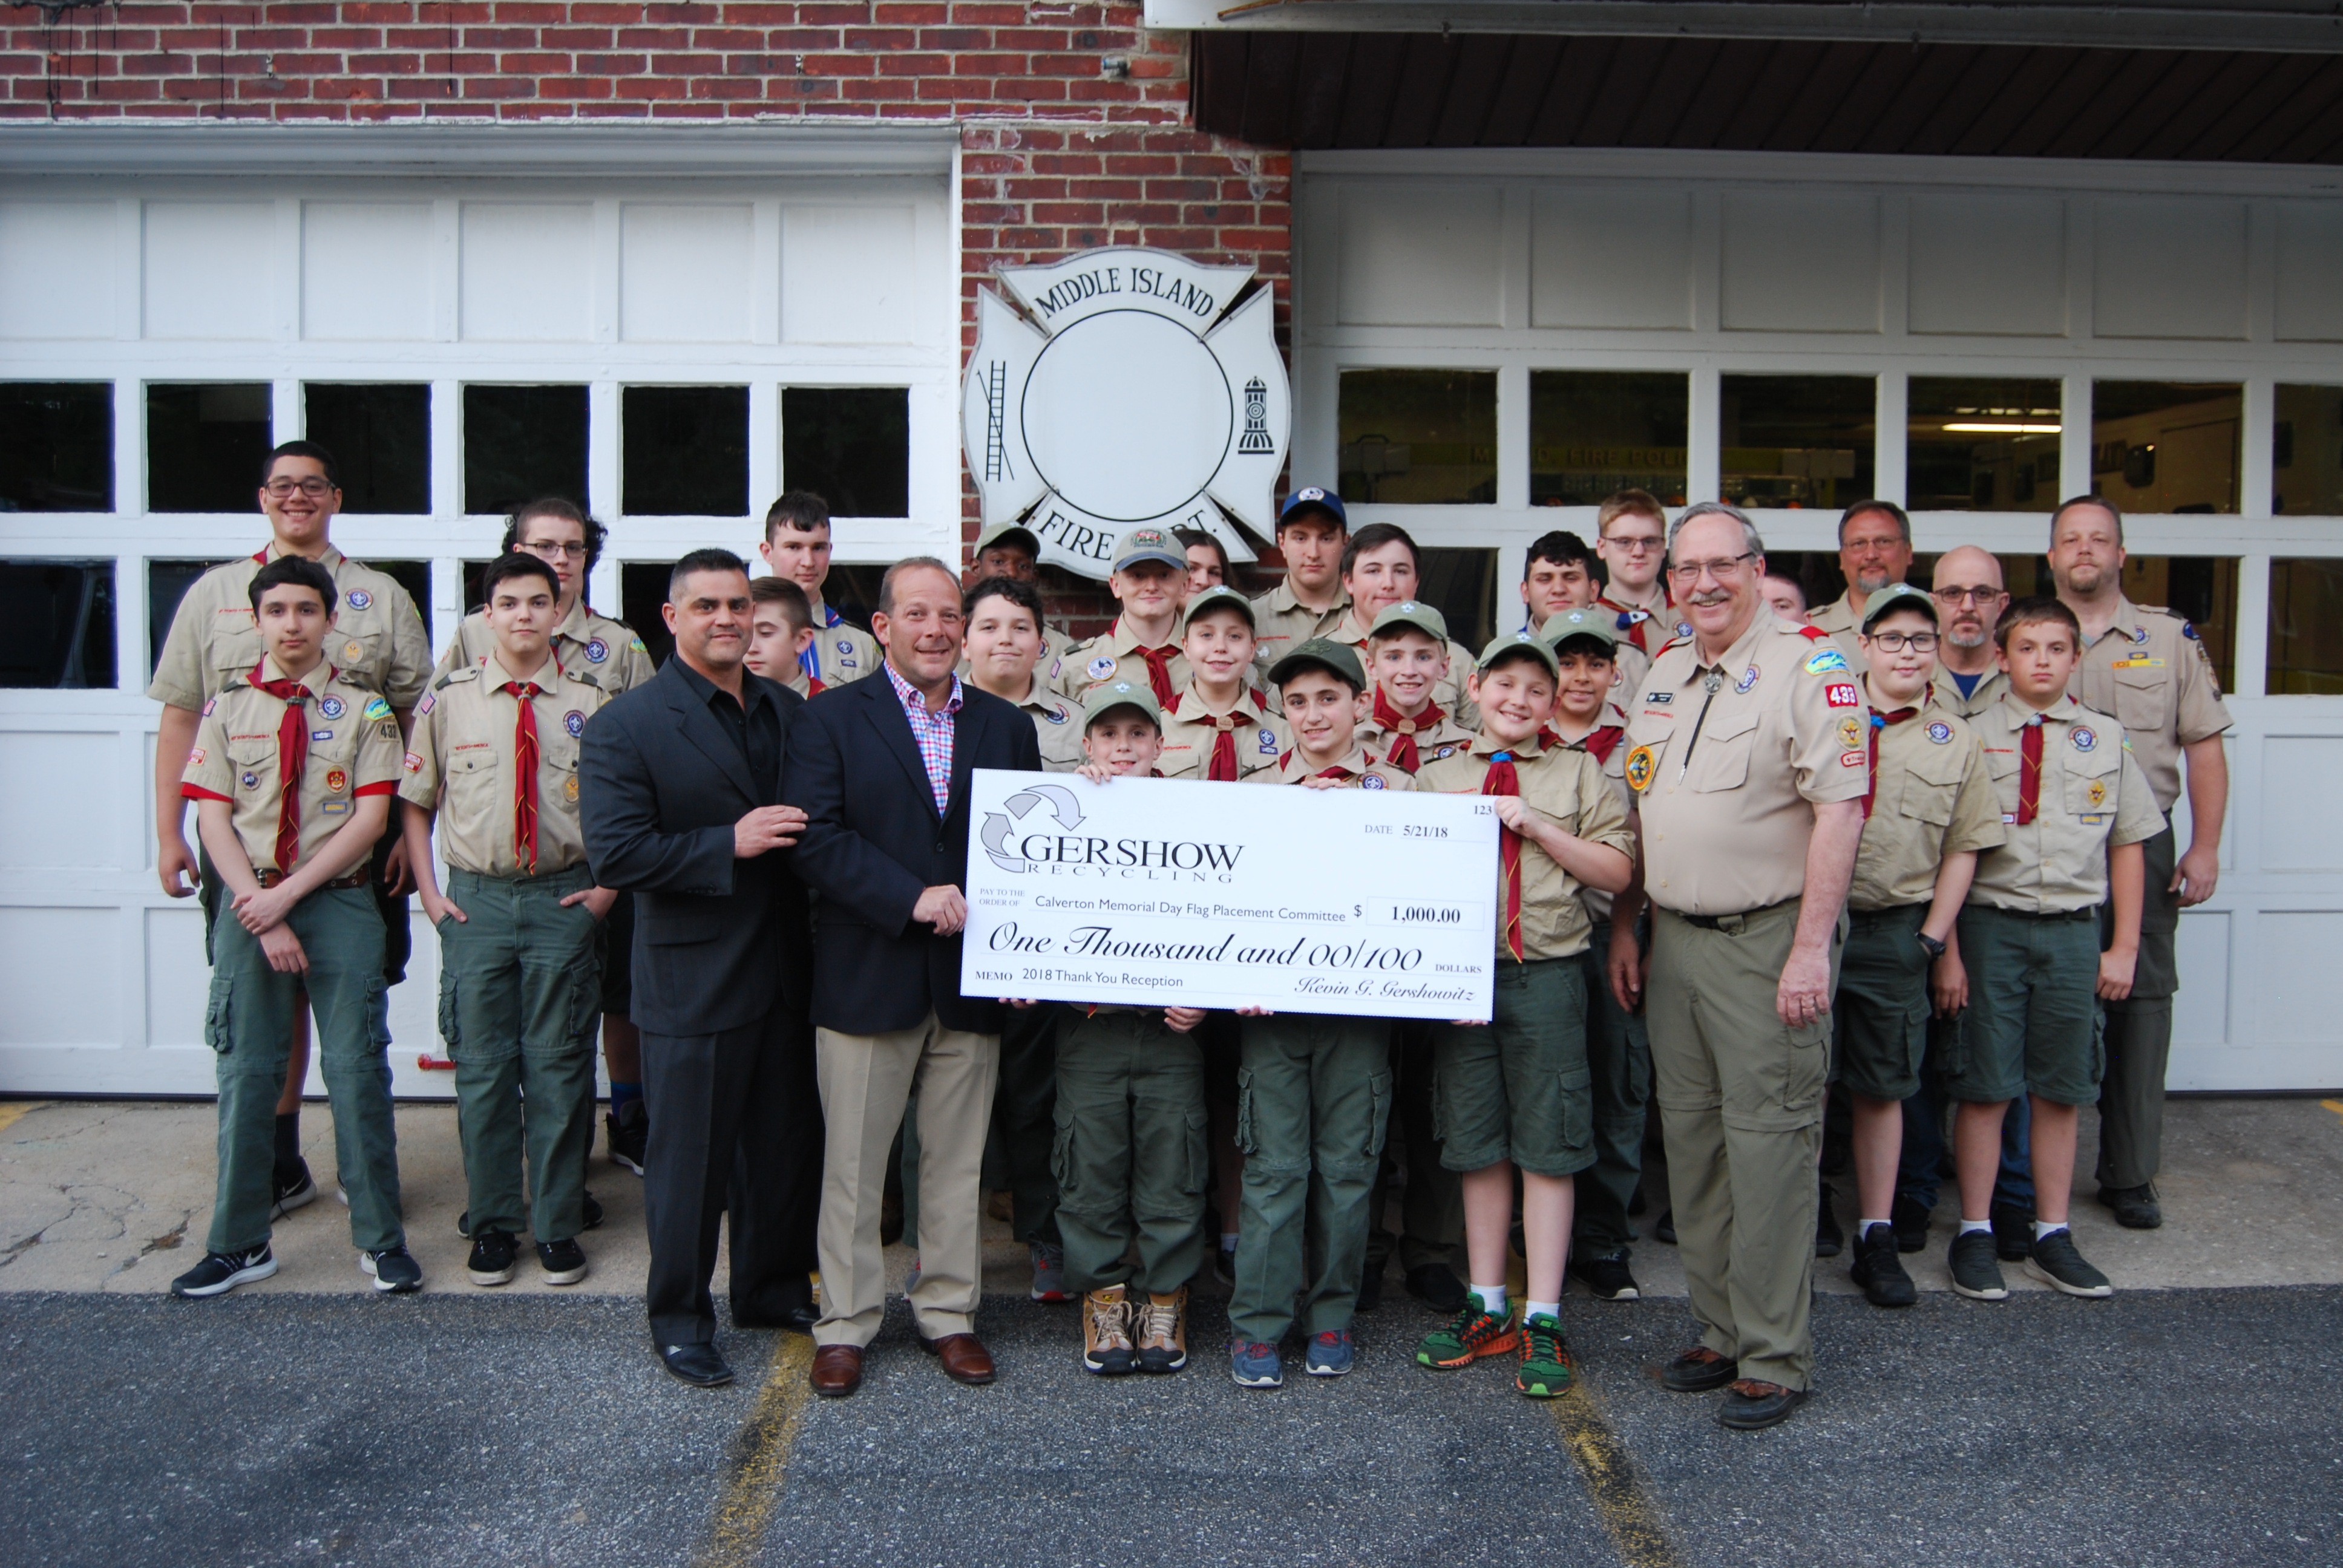 , Gershow Recycling Supports Boy Scout Leader's Memorial Day Flag Placement Committee